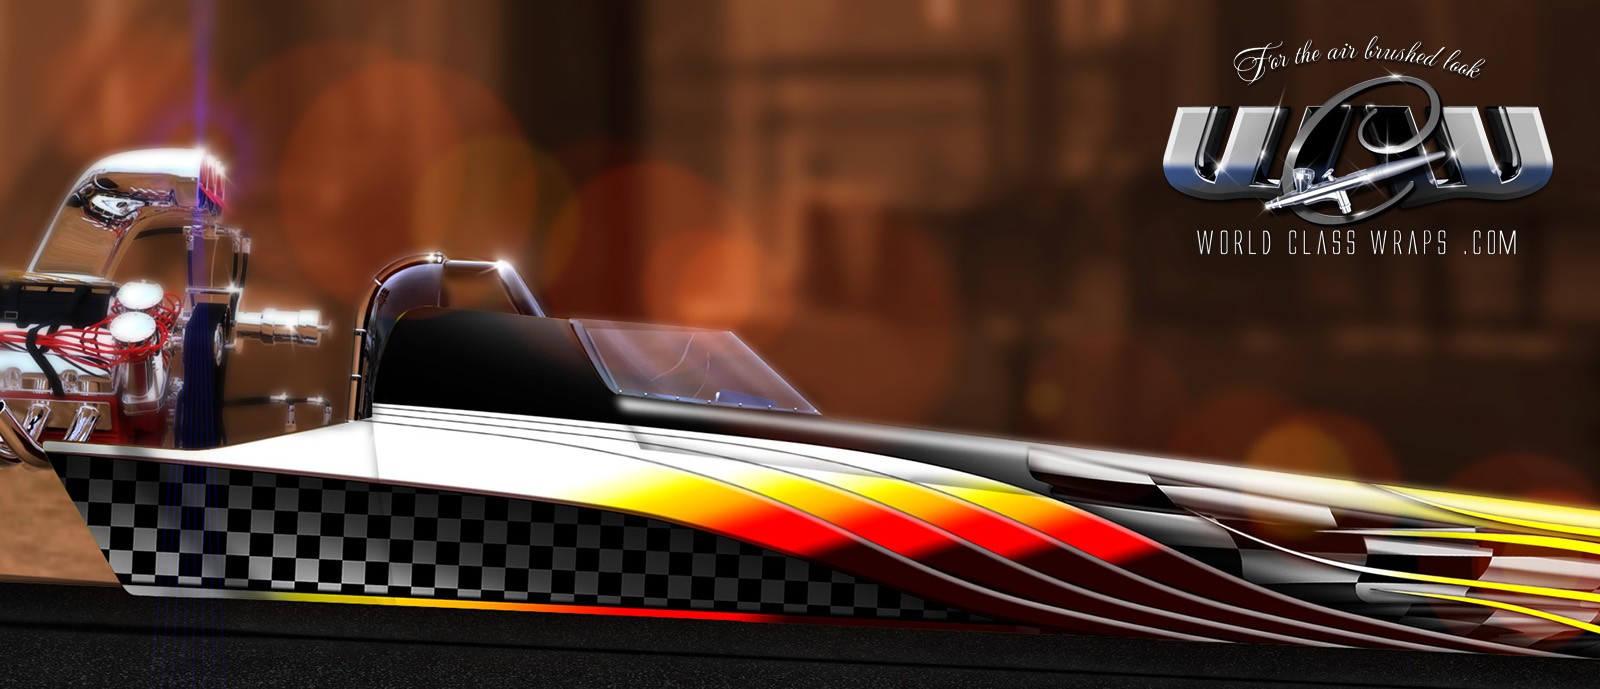 Tytan dragster graphics wrap design 2